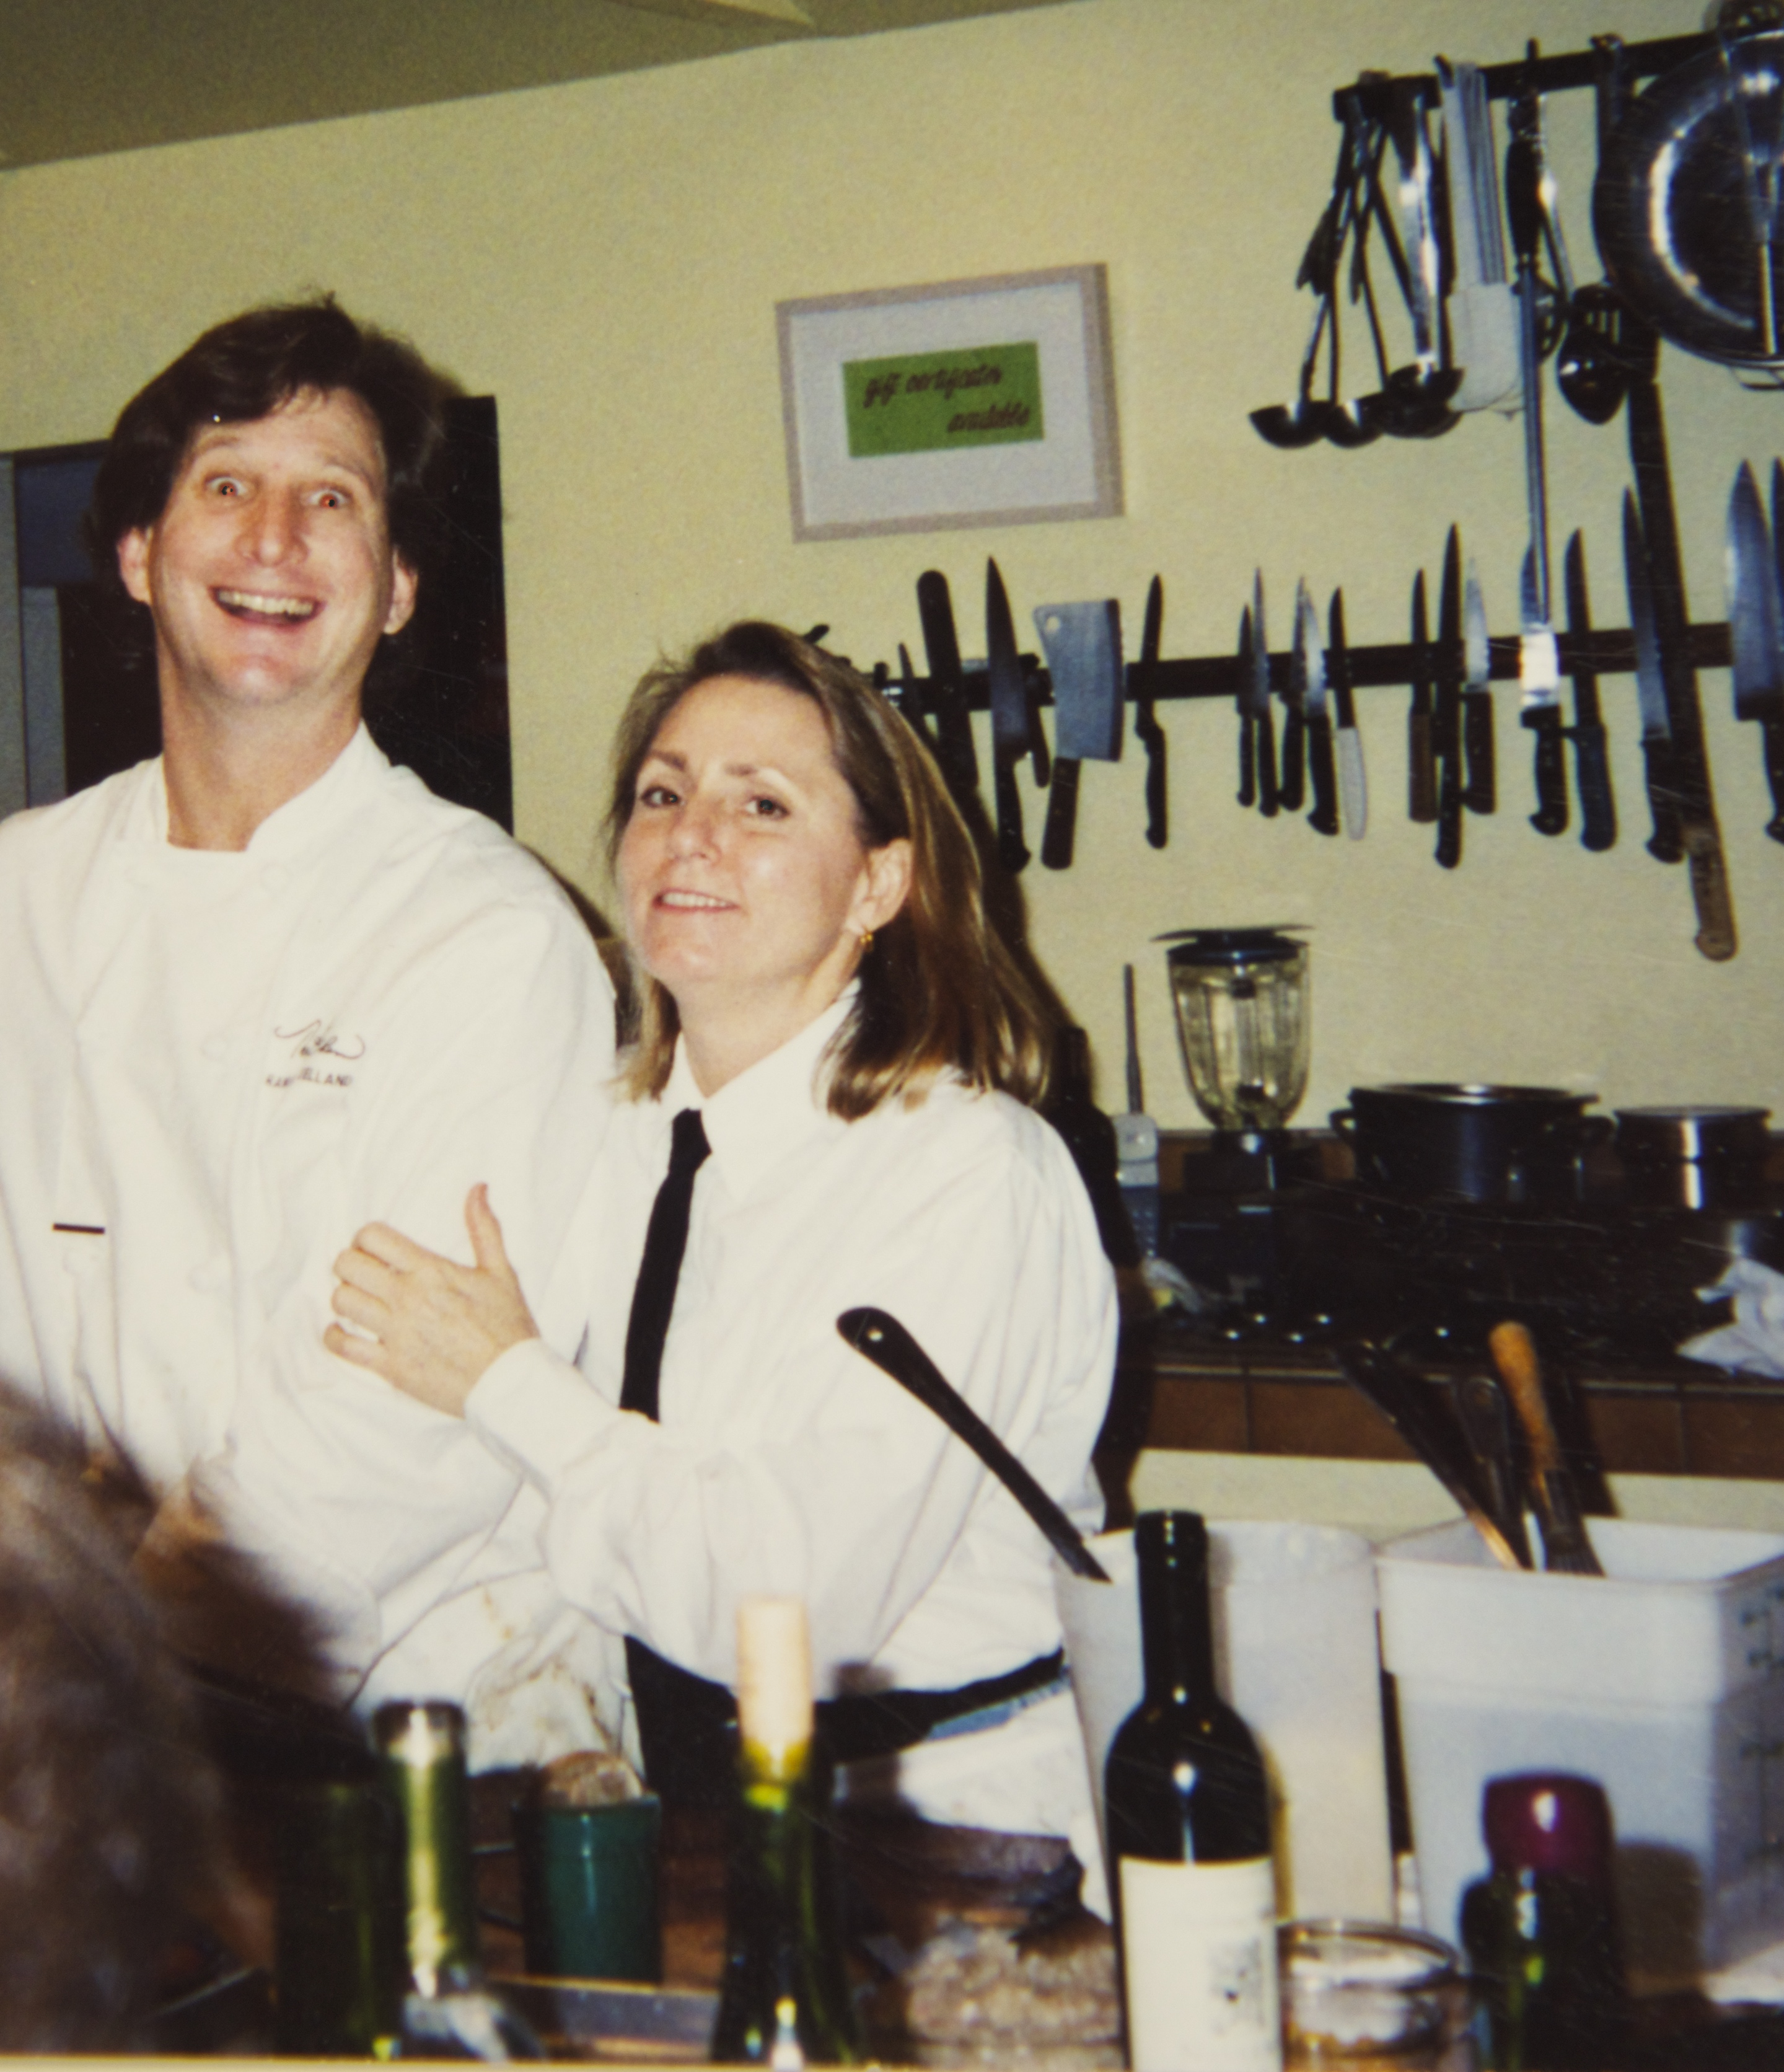 Chefs/Owners Randall Selland and Nancy Zimmer at the original Kitchen location